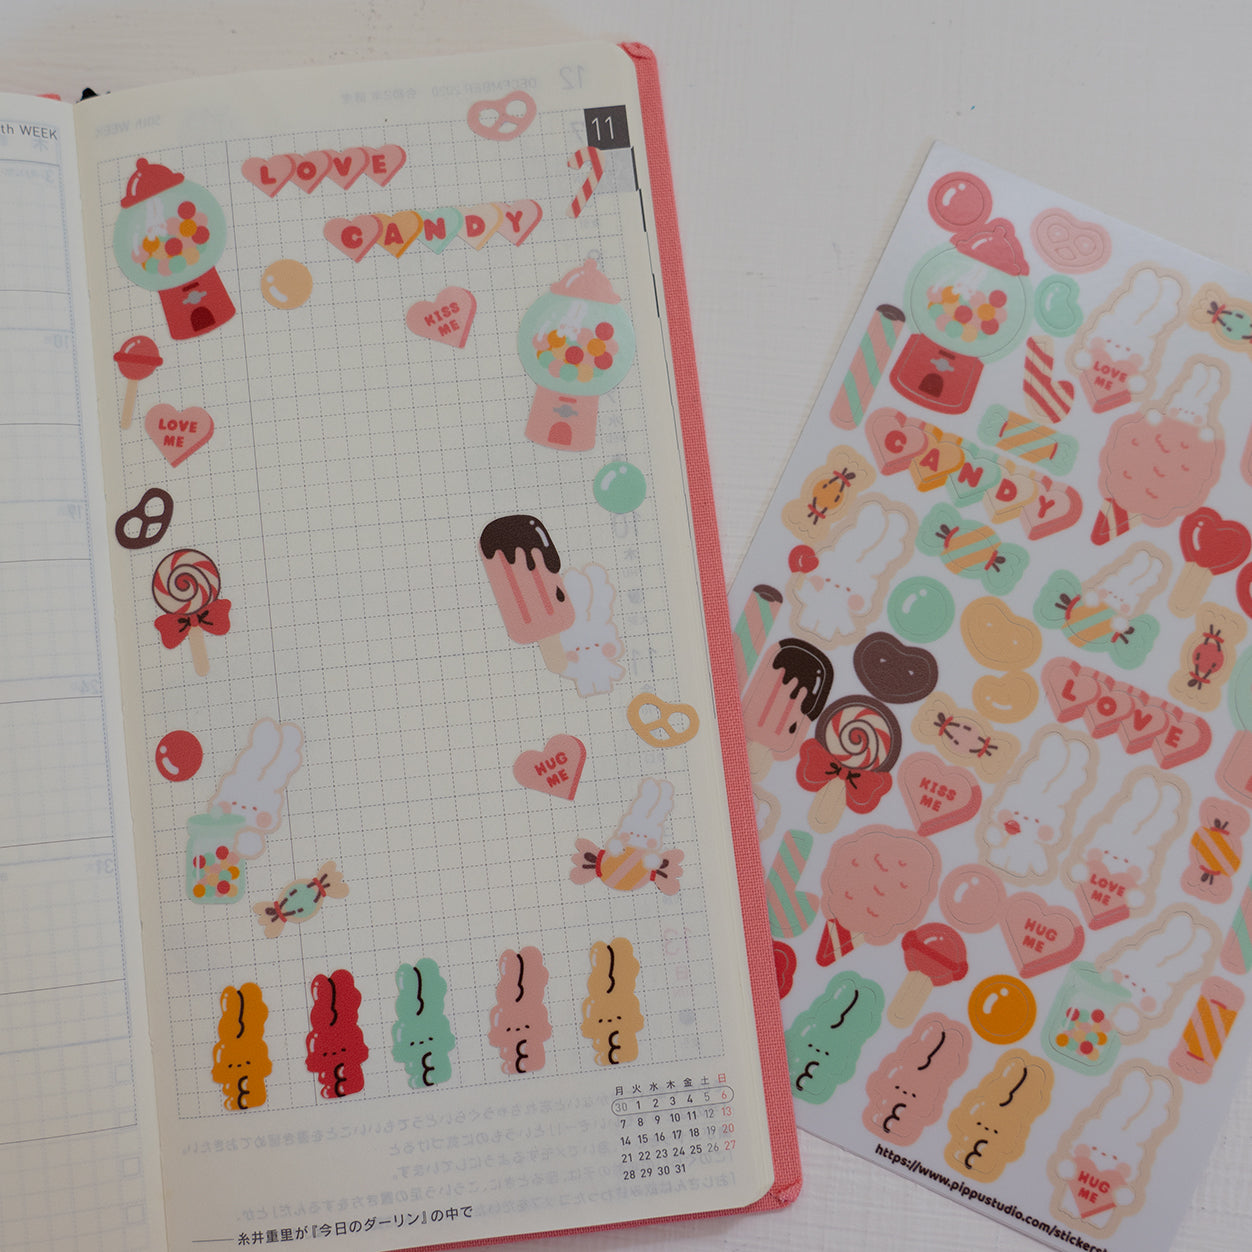 A32-Candy sticker sheet